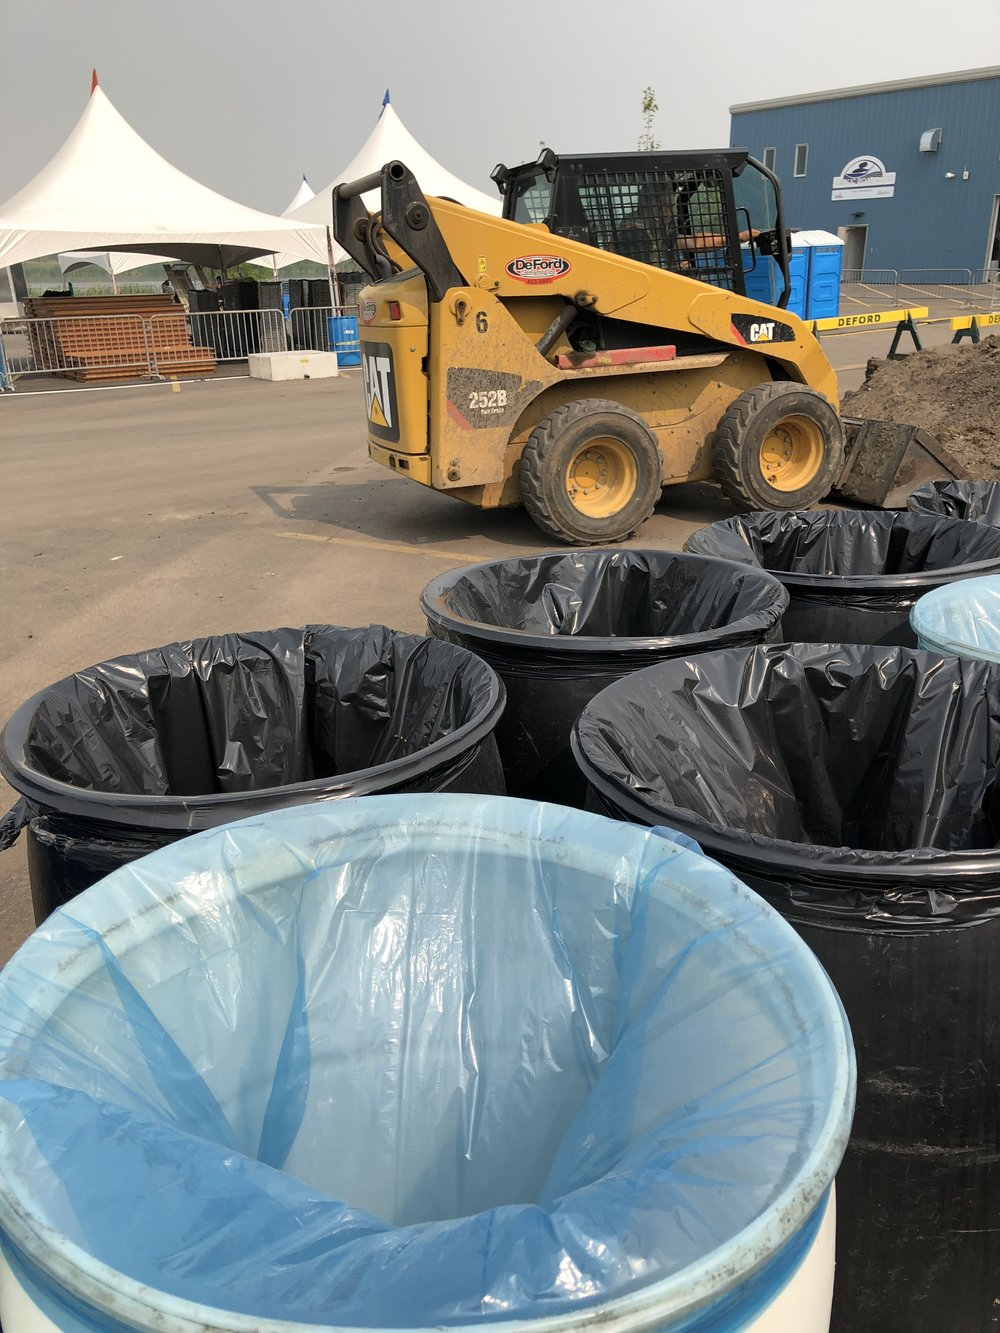 """Thursday afternoon: a big pile of dirt right where the merchandise tent is supposed to be. We wanted to put up a tent and call it a """"sandbox"""" but ... liabilities."""